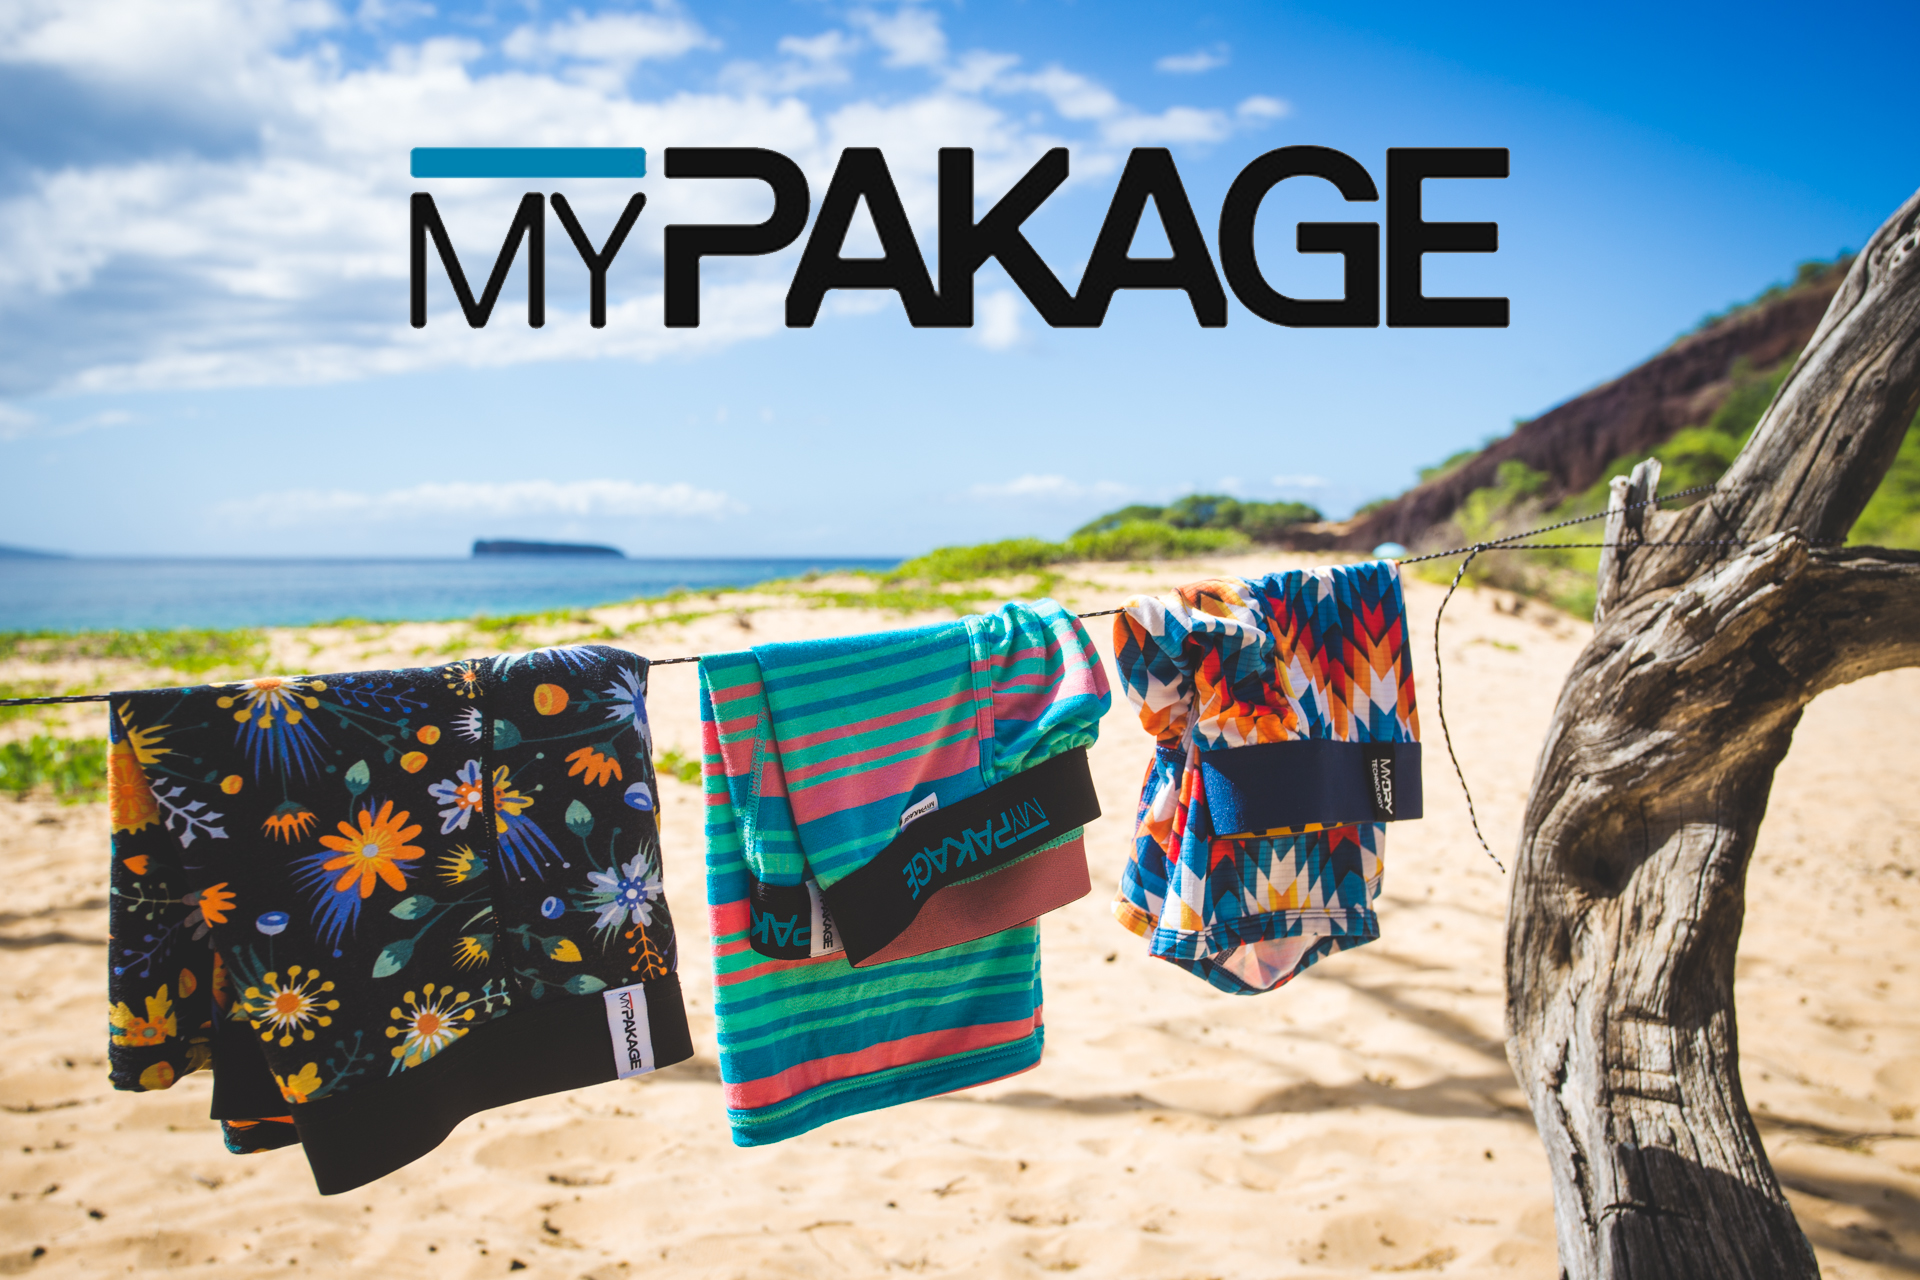 Print, web, and social media advertising images produced for MyPakage.